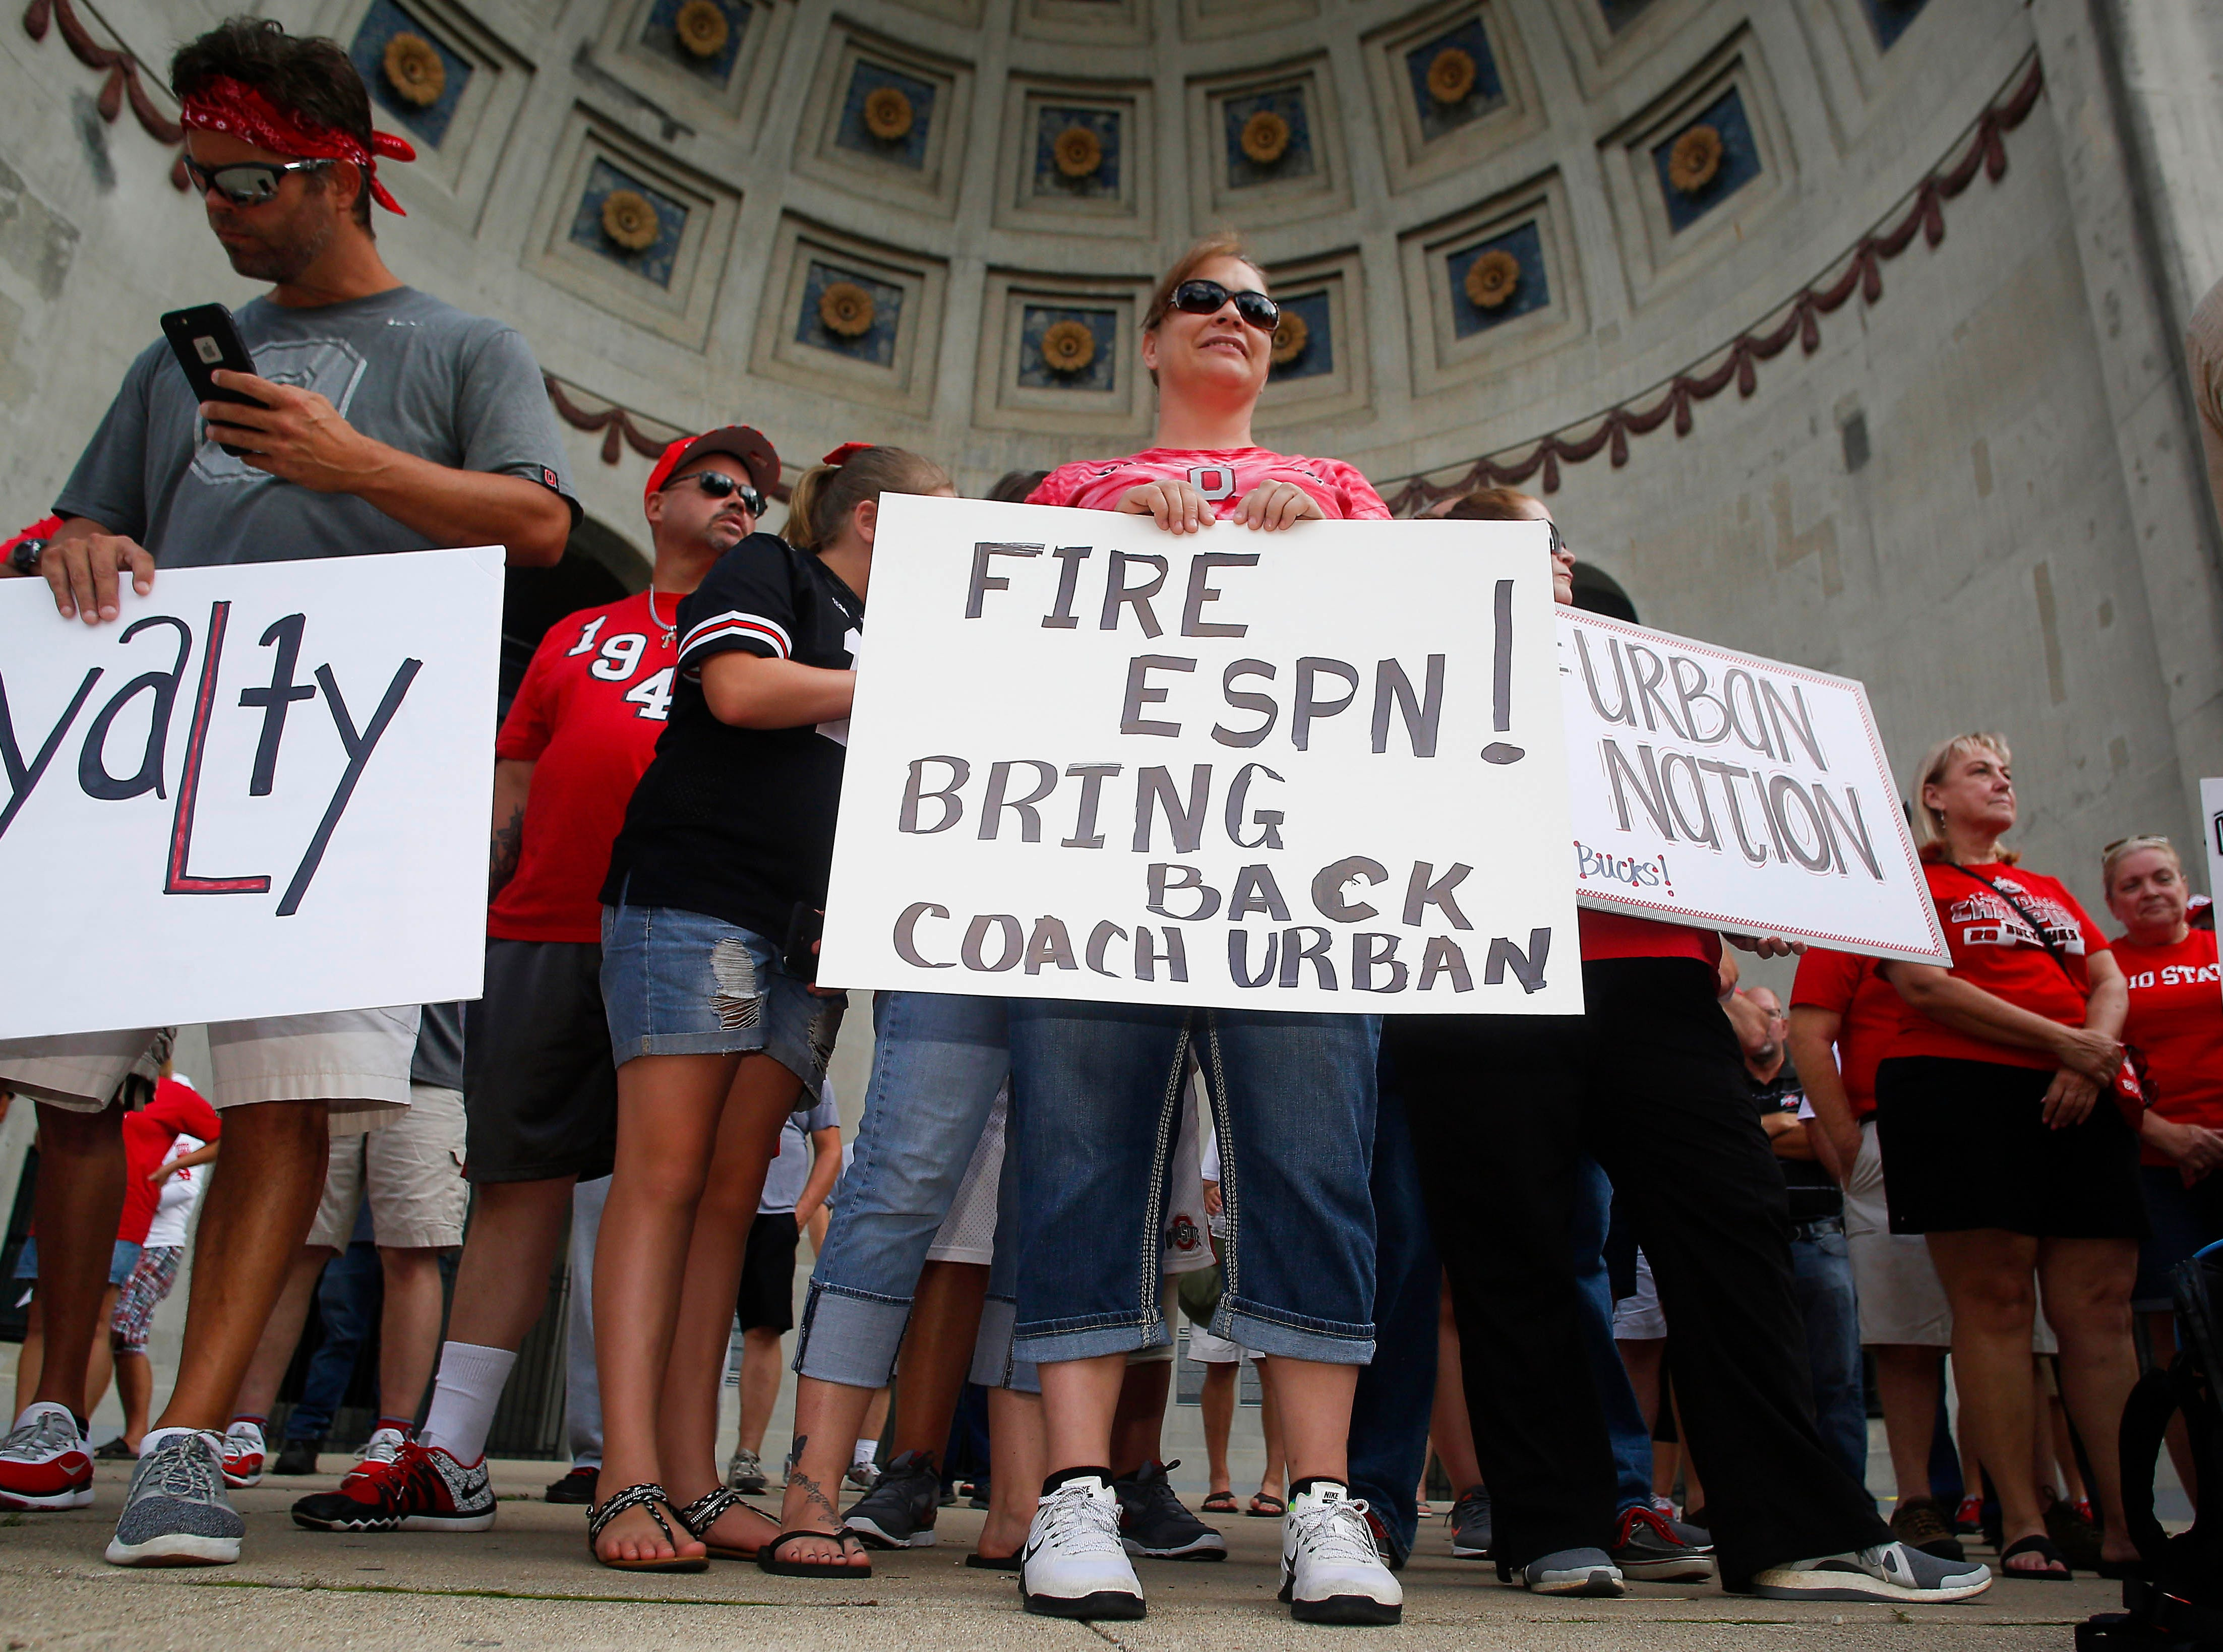 Tonya Poland of New Concord, Ohio, and others support Ohio State coach Urban Meyer at a rally held at Ohio Stadium.